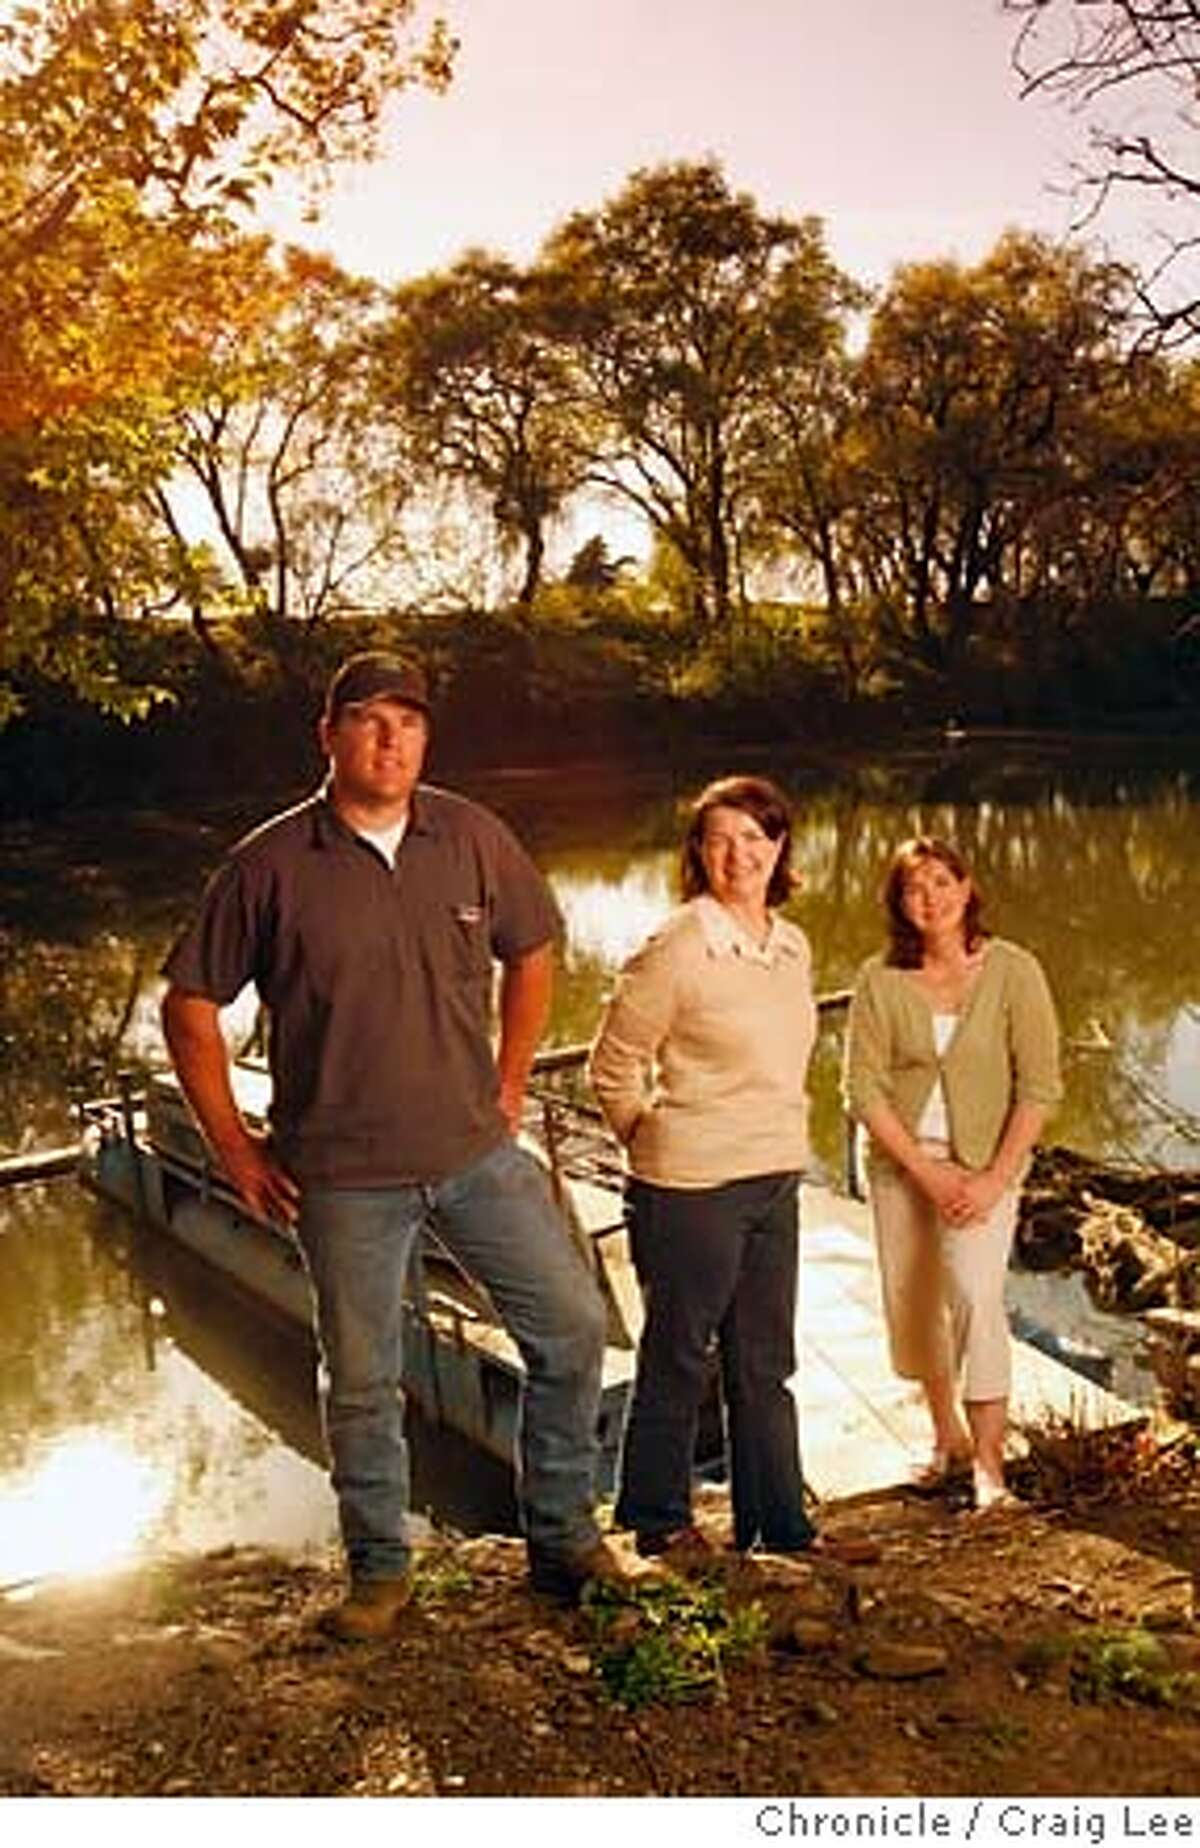 YOLO13_787_cl.JPG Photo for a story on wineries in Yolo county.This is Bogle Vineyards in Clarksburg. Photo of left-right: Warren Bogle (named after after his grandfather and founder of Bogle Vineyards), Patty Bogle (Warren's mother), and Jody Bogle Van dePol (Patty's daughter and Warren's sister). Photo was taken out across from their vineyard at Elk Slough, which is where they get some of their water for the vineyard. Elk Slough connects to the Sacramento River. Event on 3/29/07 in Clarksburg. photo by Craig Lee / The Chronicle MANDATORY CREDIT FOR PHOTOG AND SF CHRONICLE/NO SALES-MAGS OUT